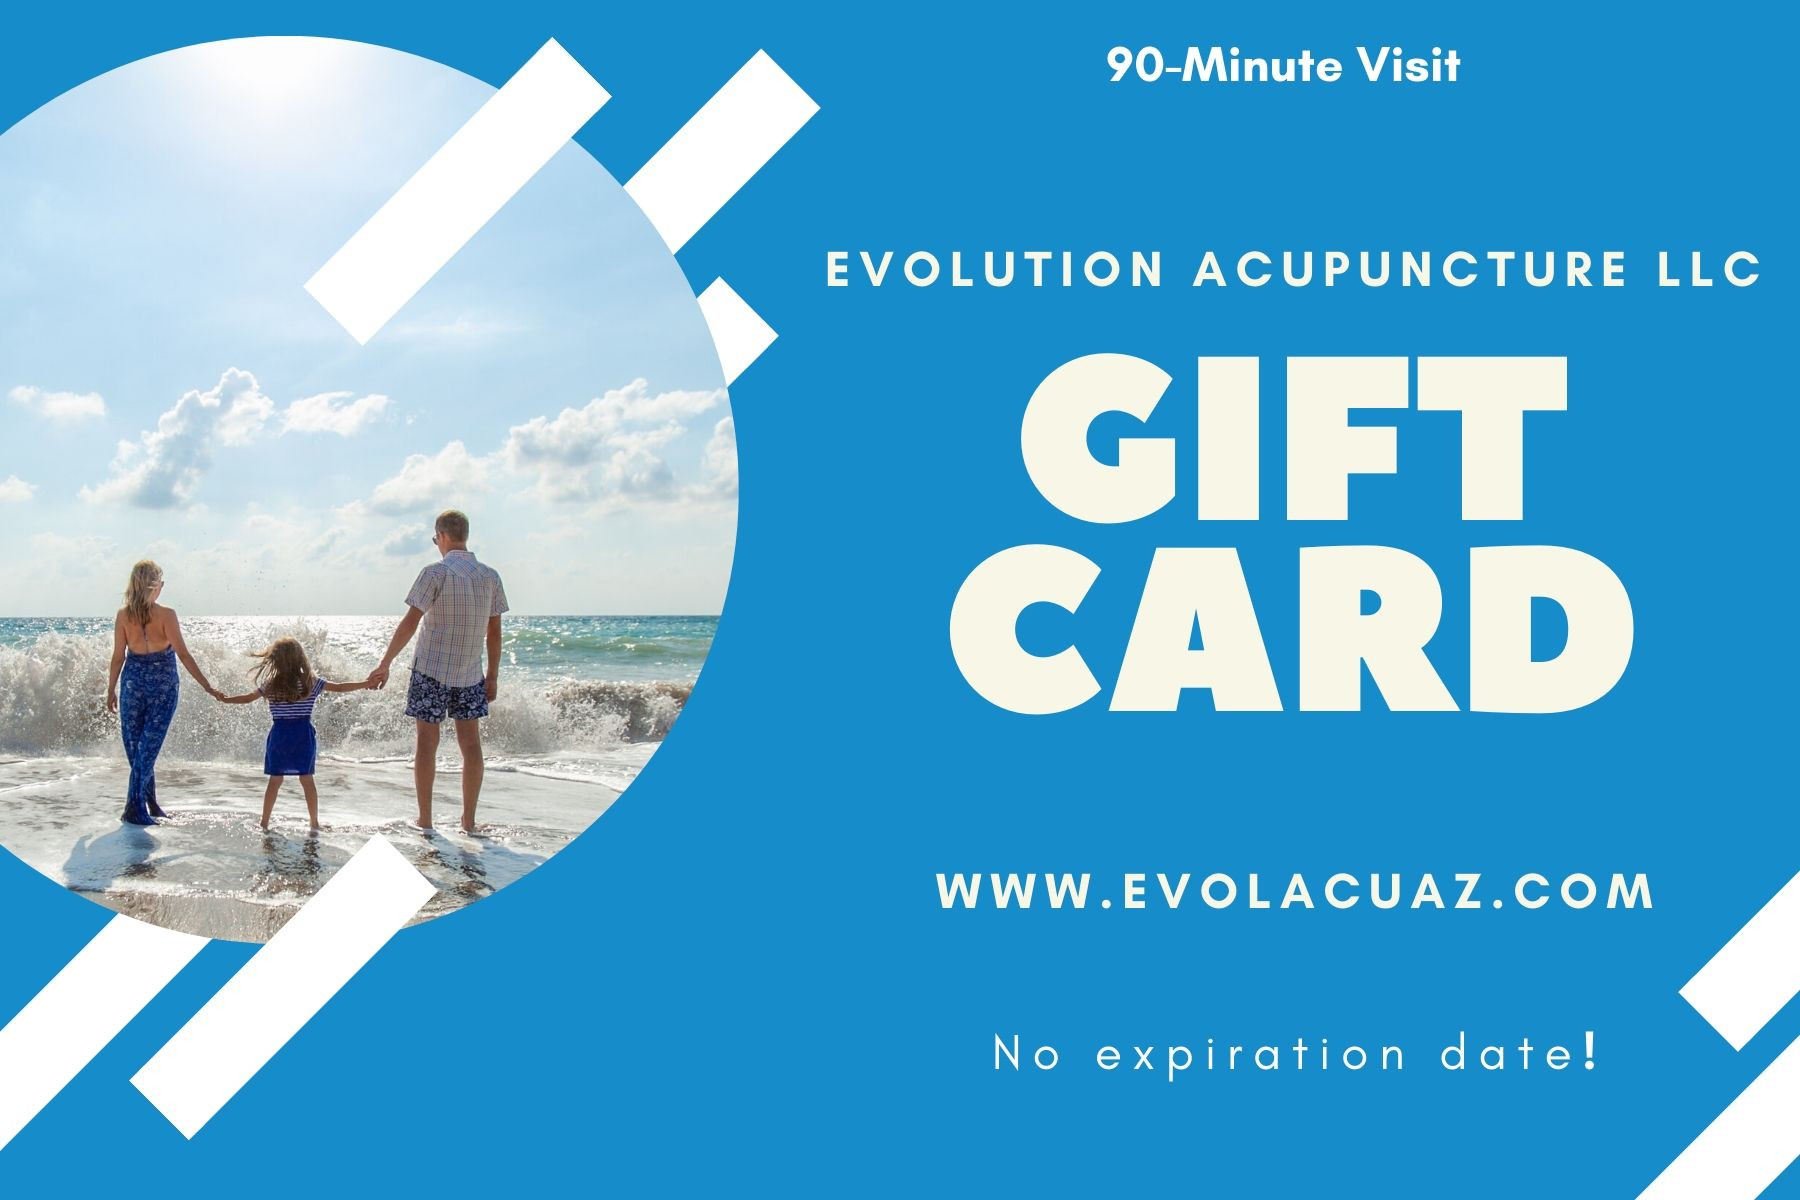 90-Minute Session Gift Card